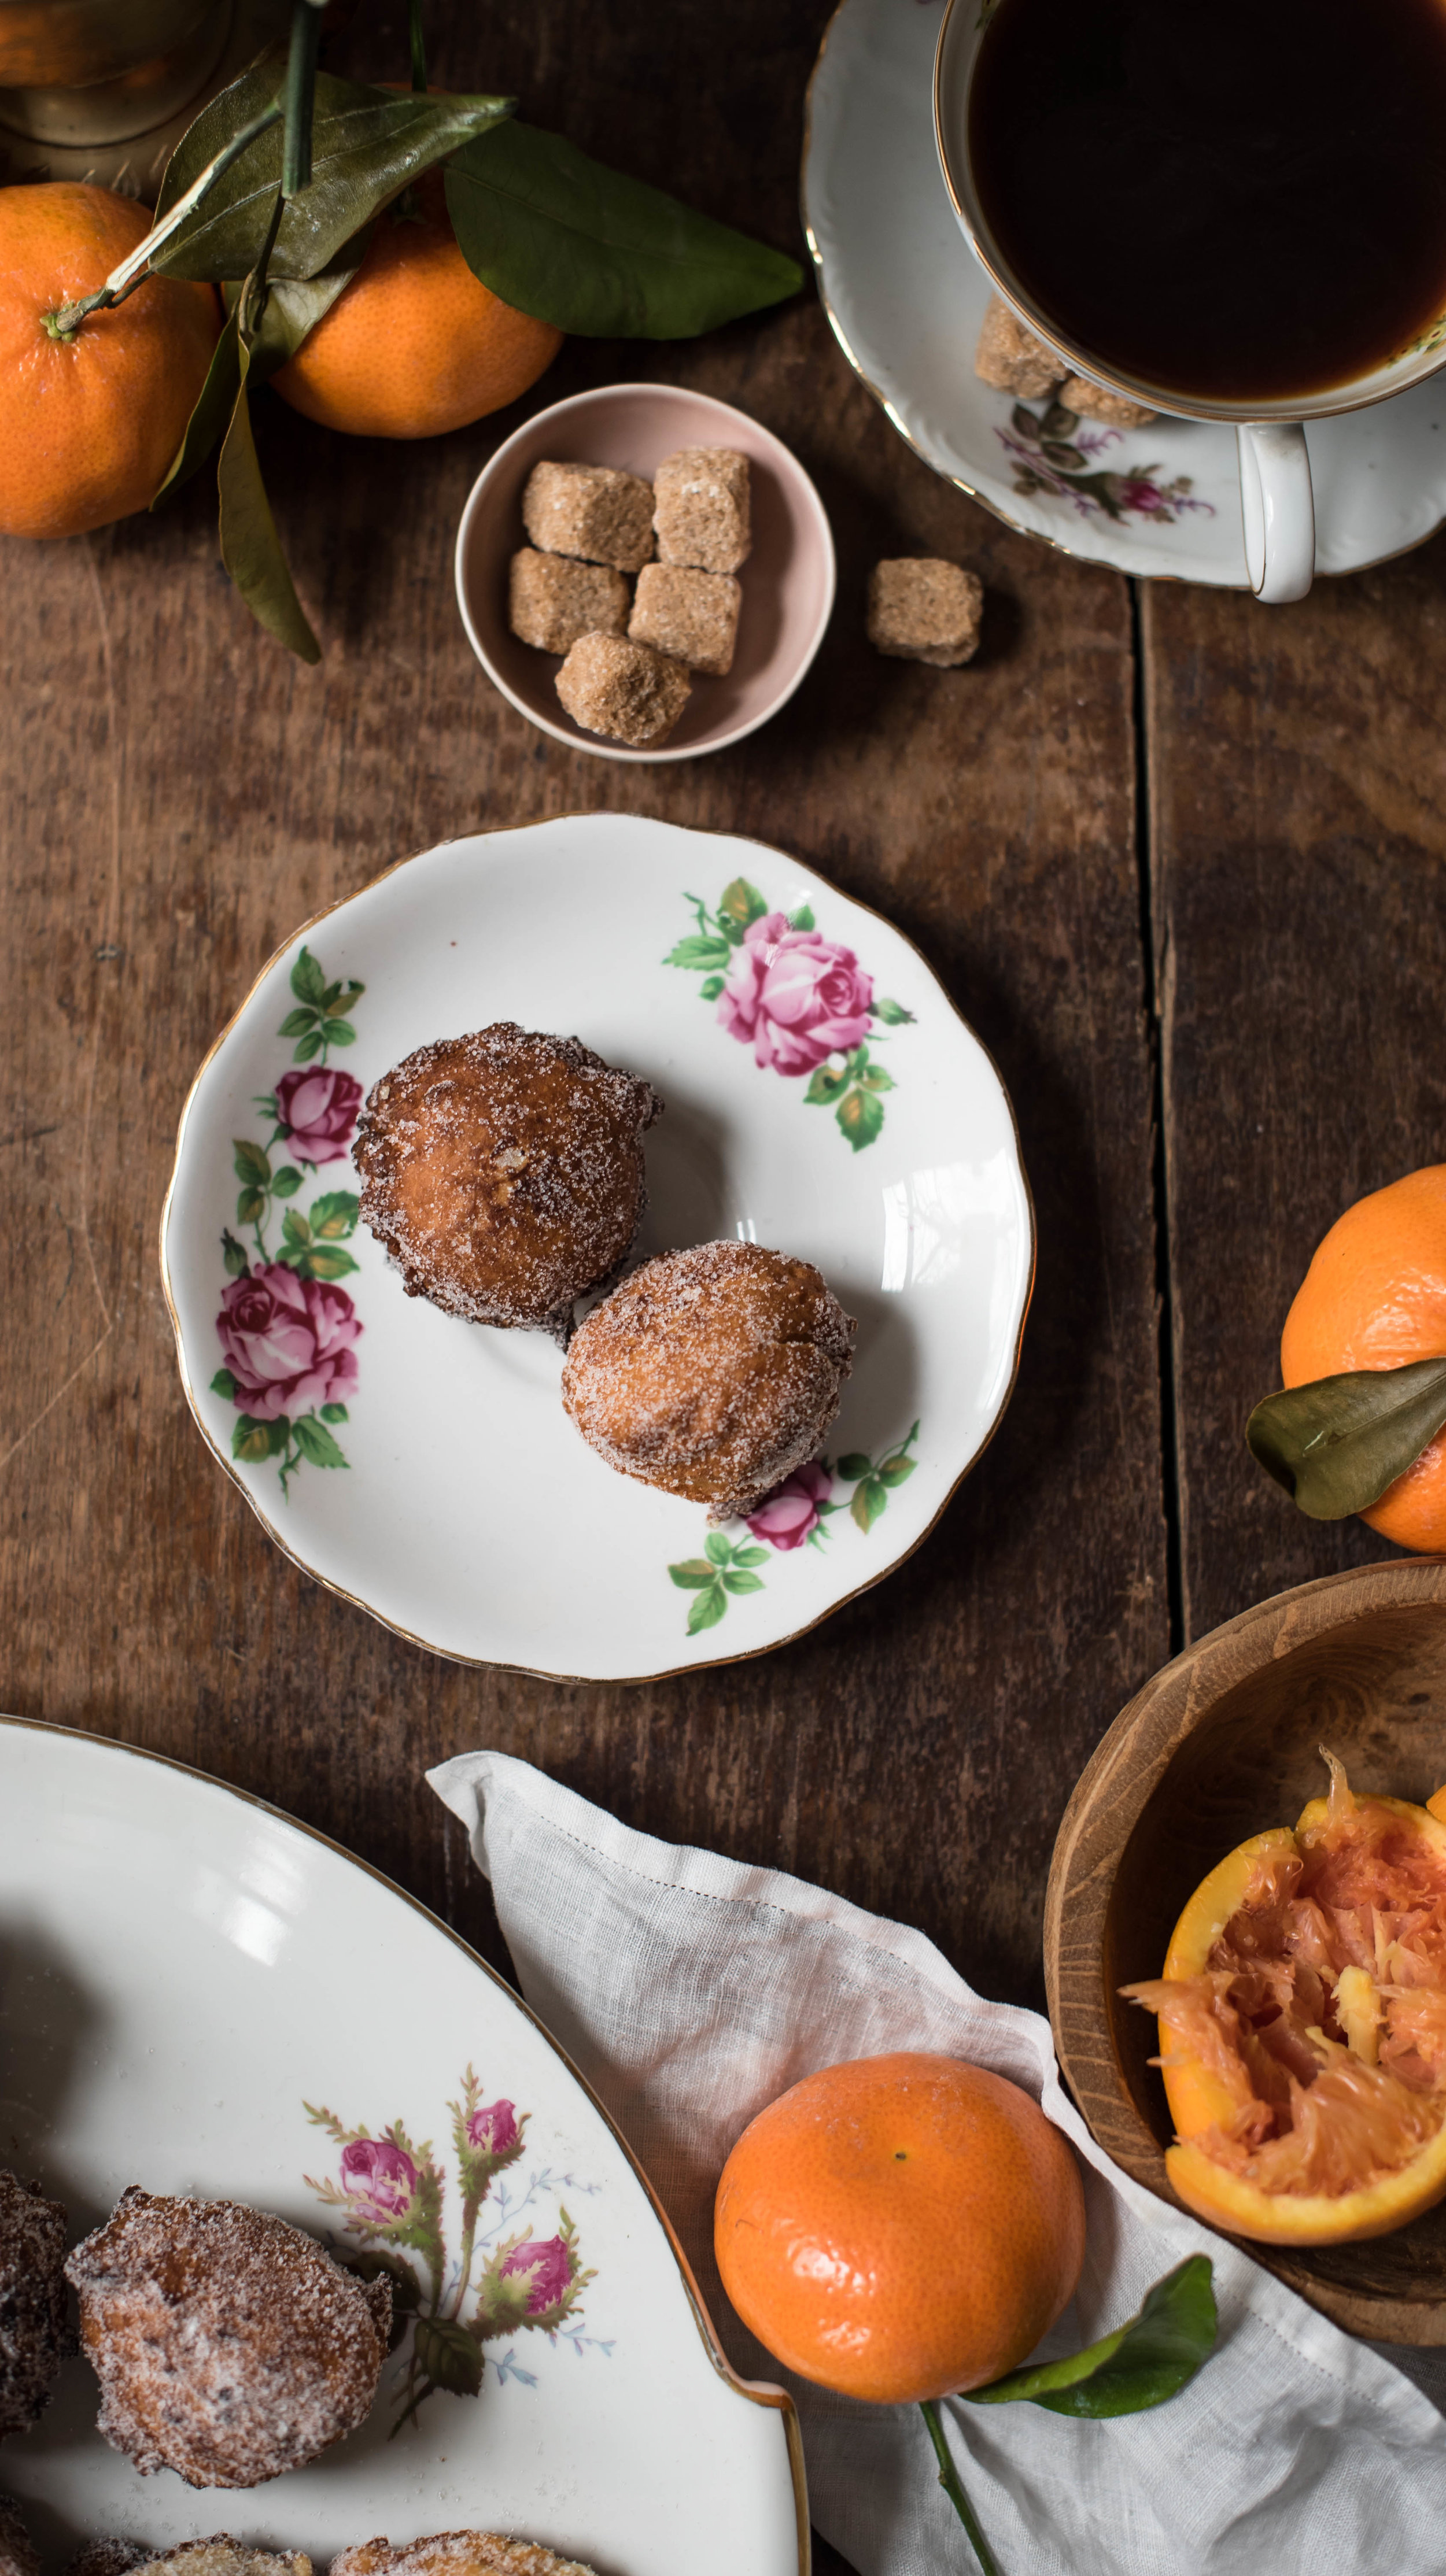 ROSE & IVY Journal Cook the Book | 'Tasting Rome' + Castagnole Recipe